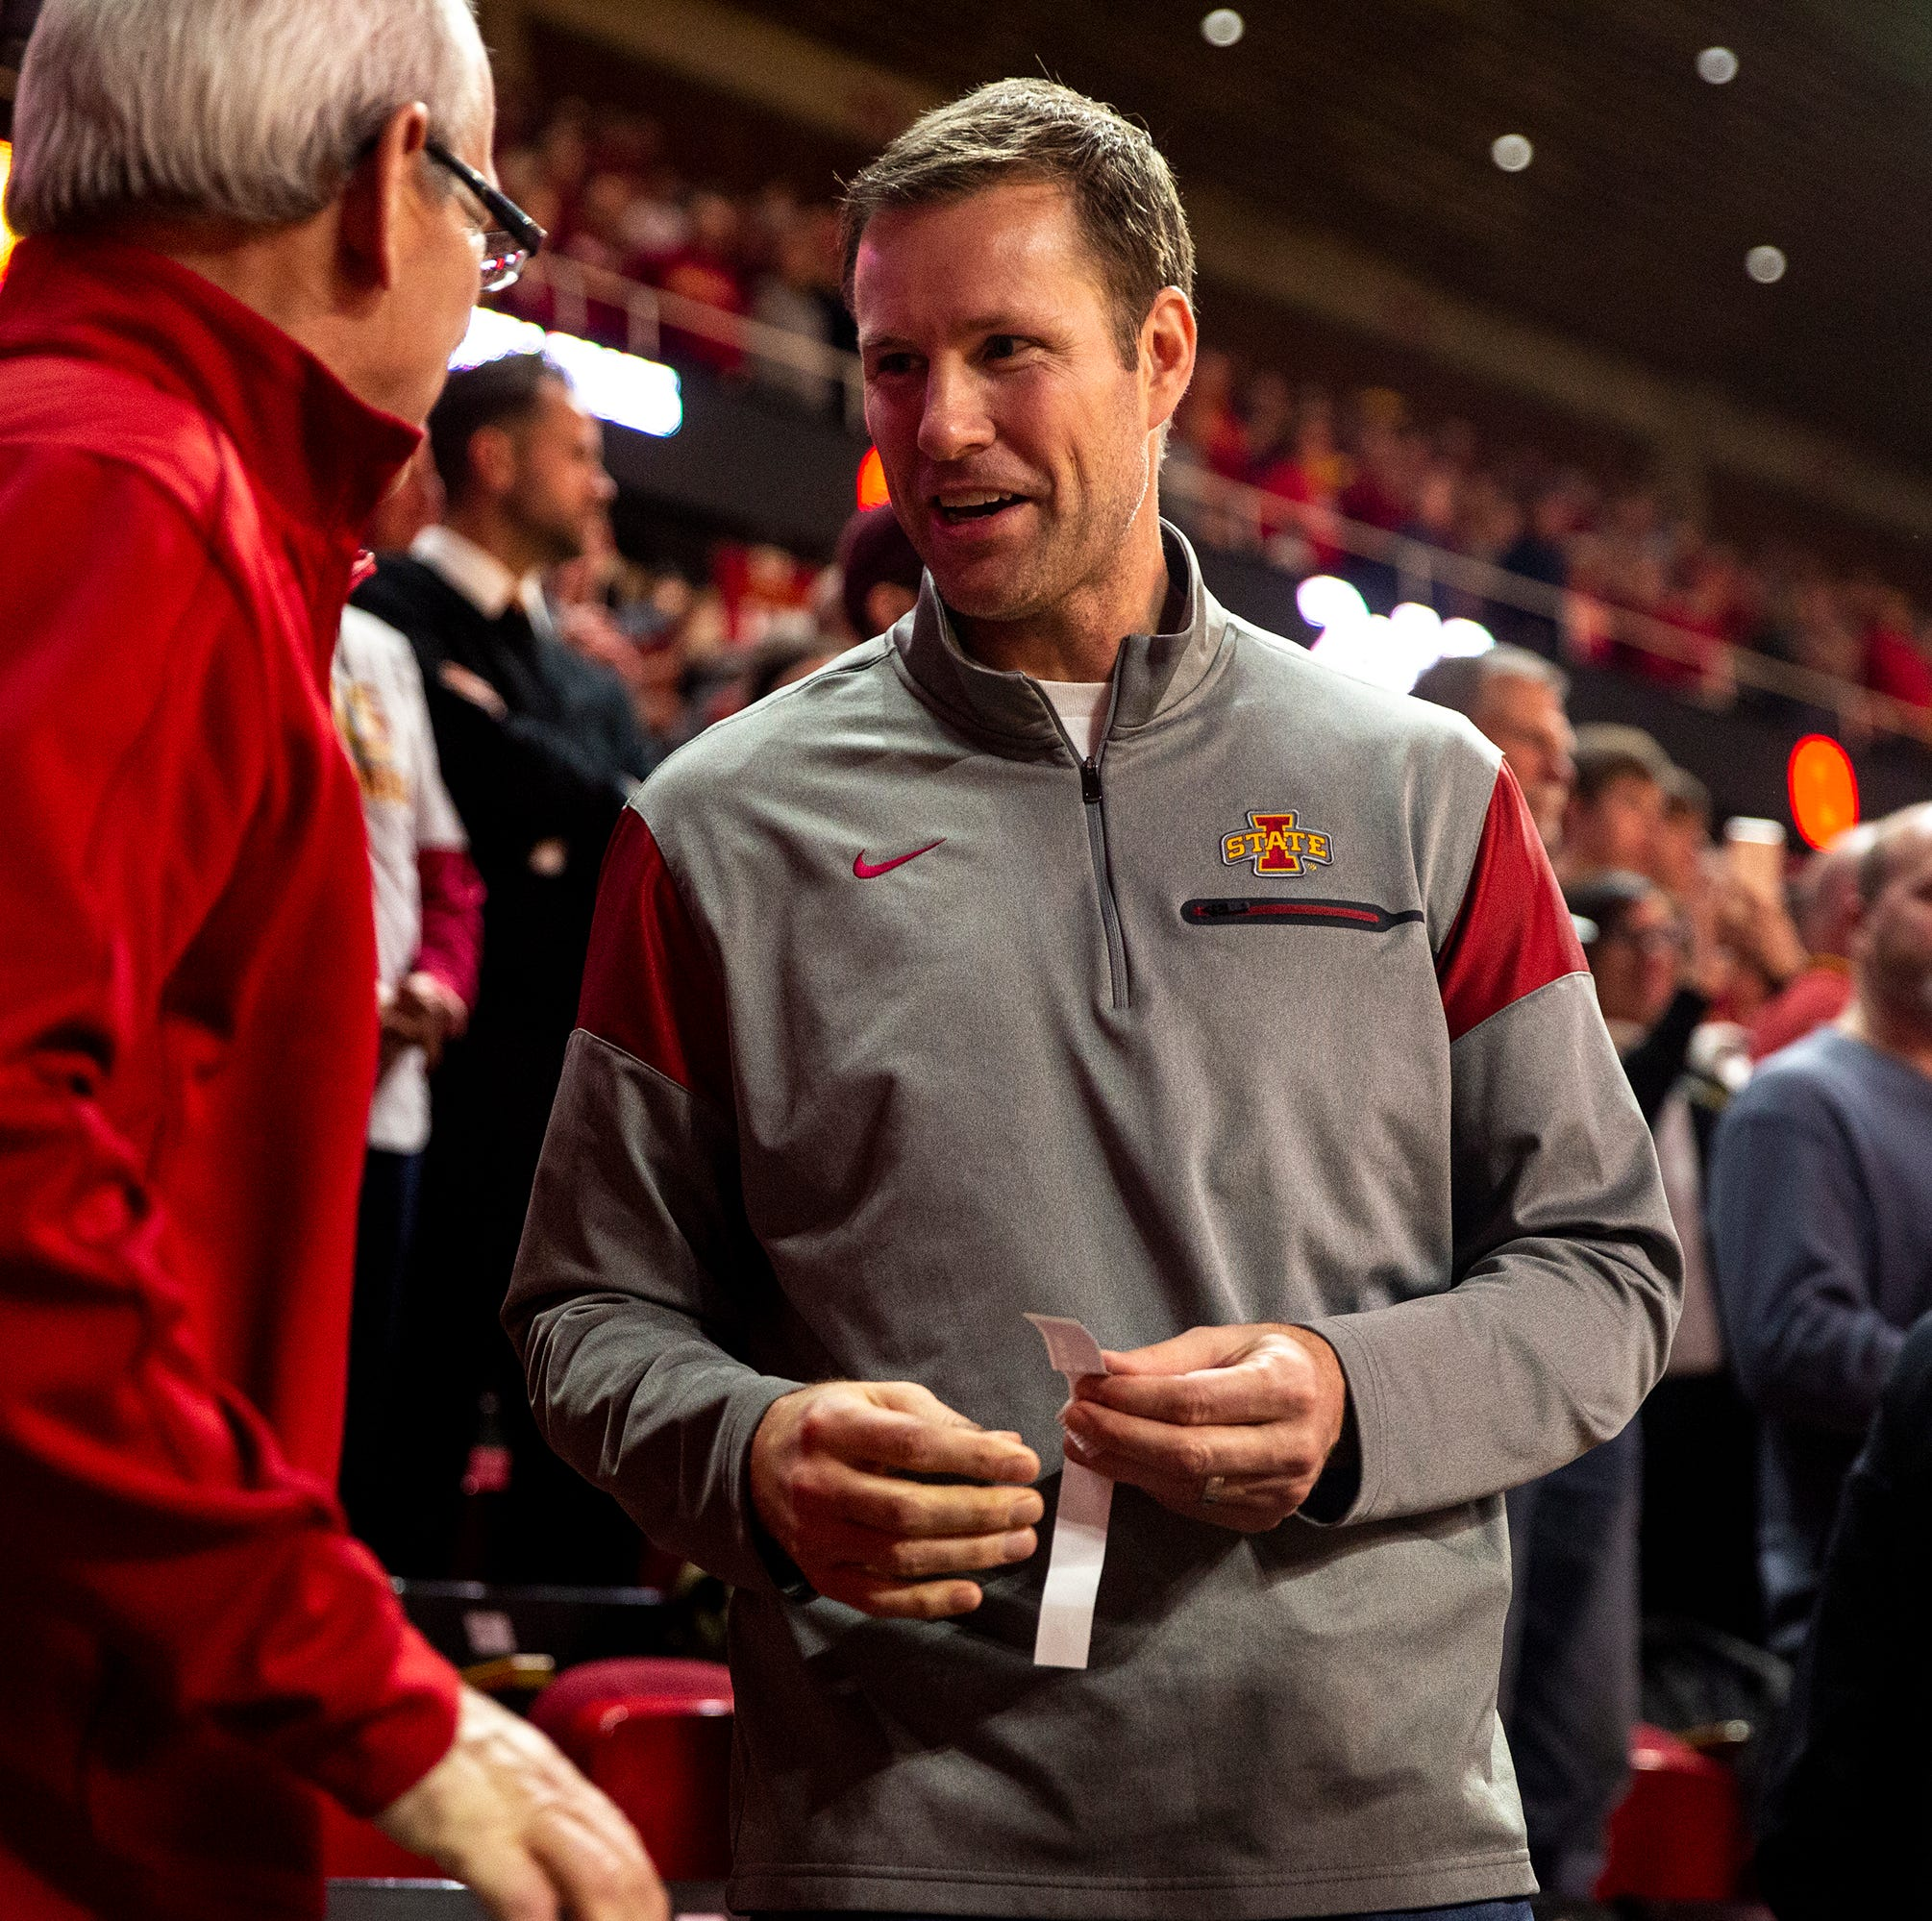 Peterson: Fred Hoiberg says he misses the 'grind' of coaching